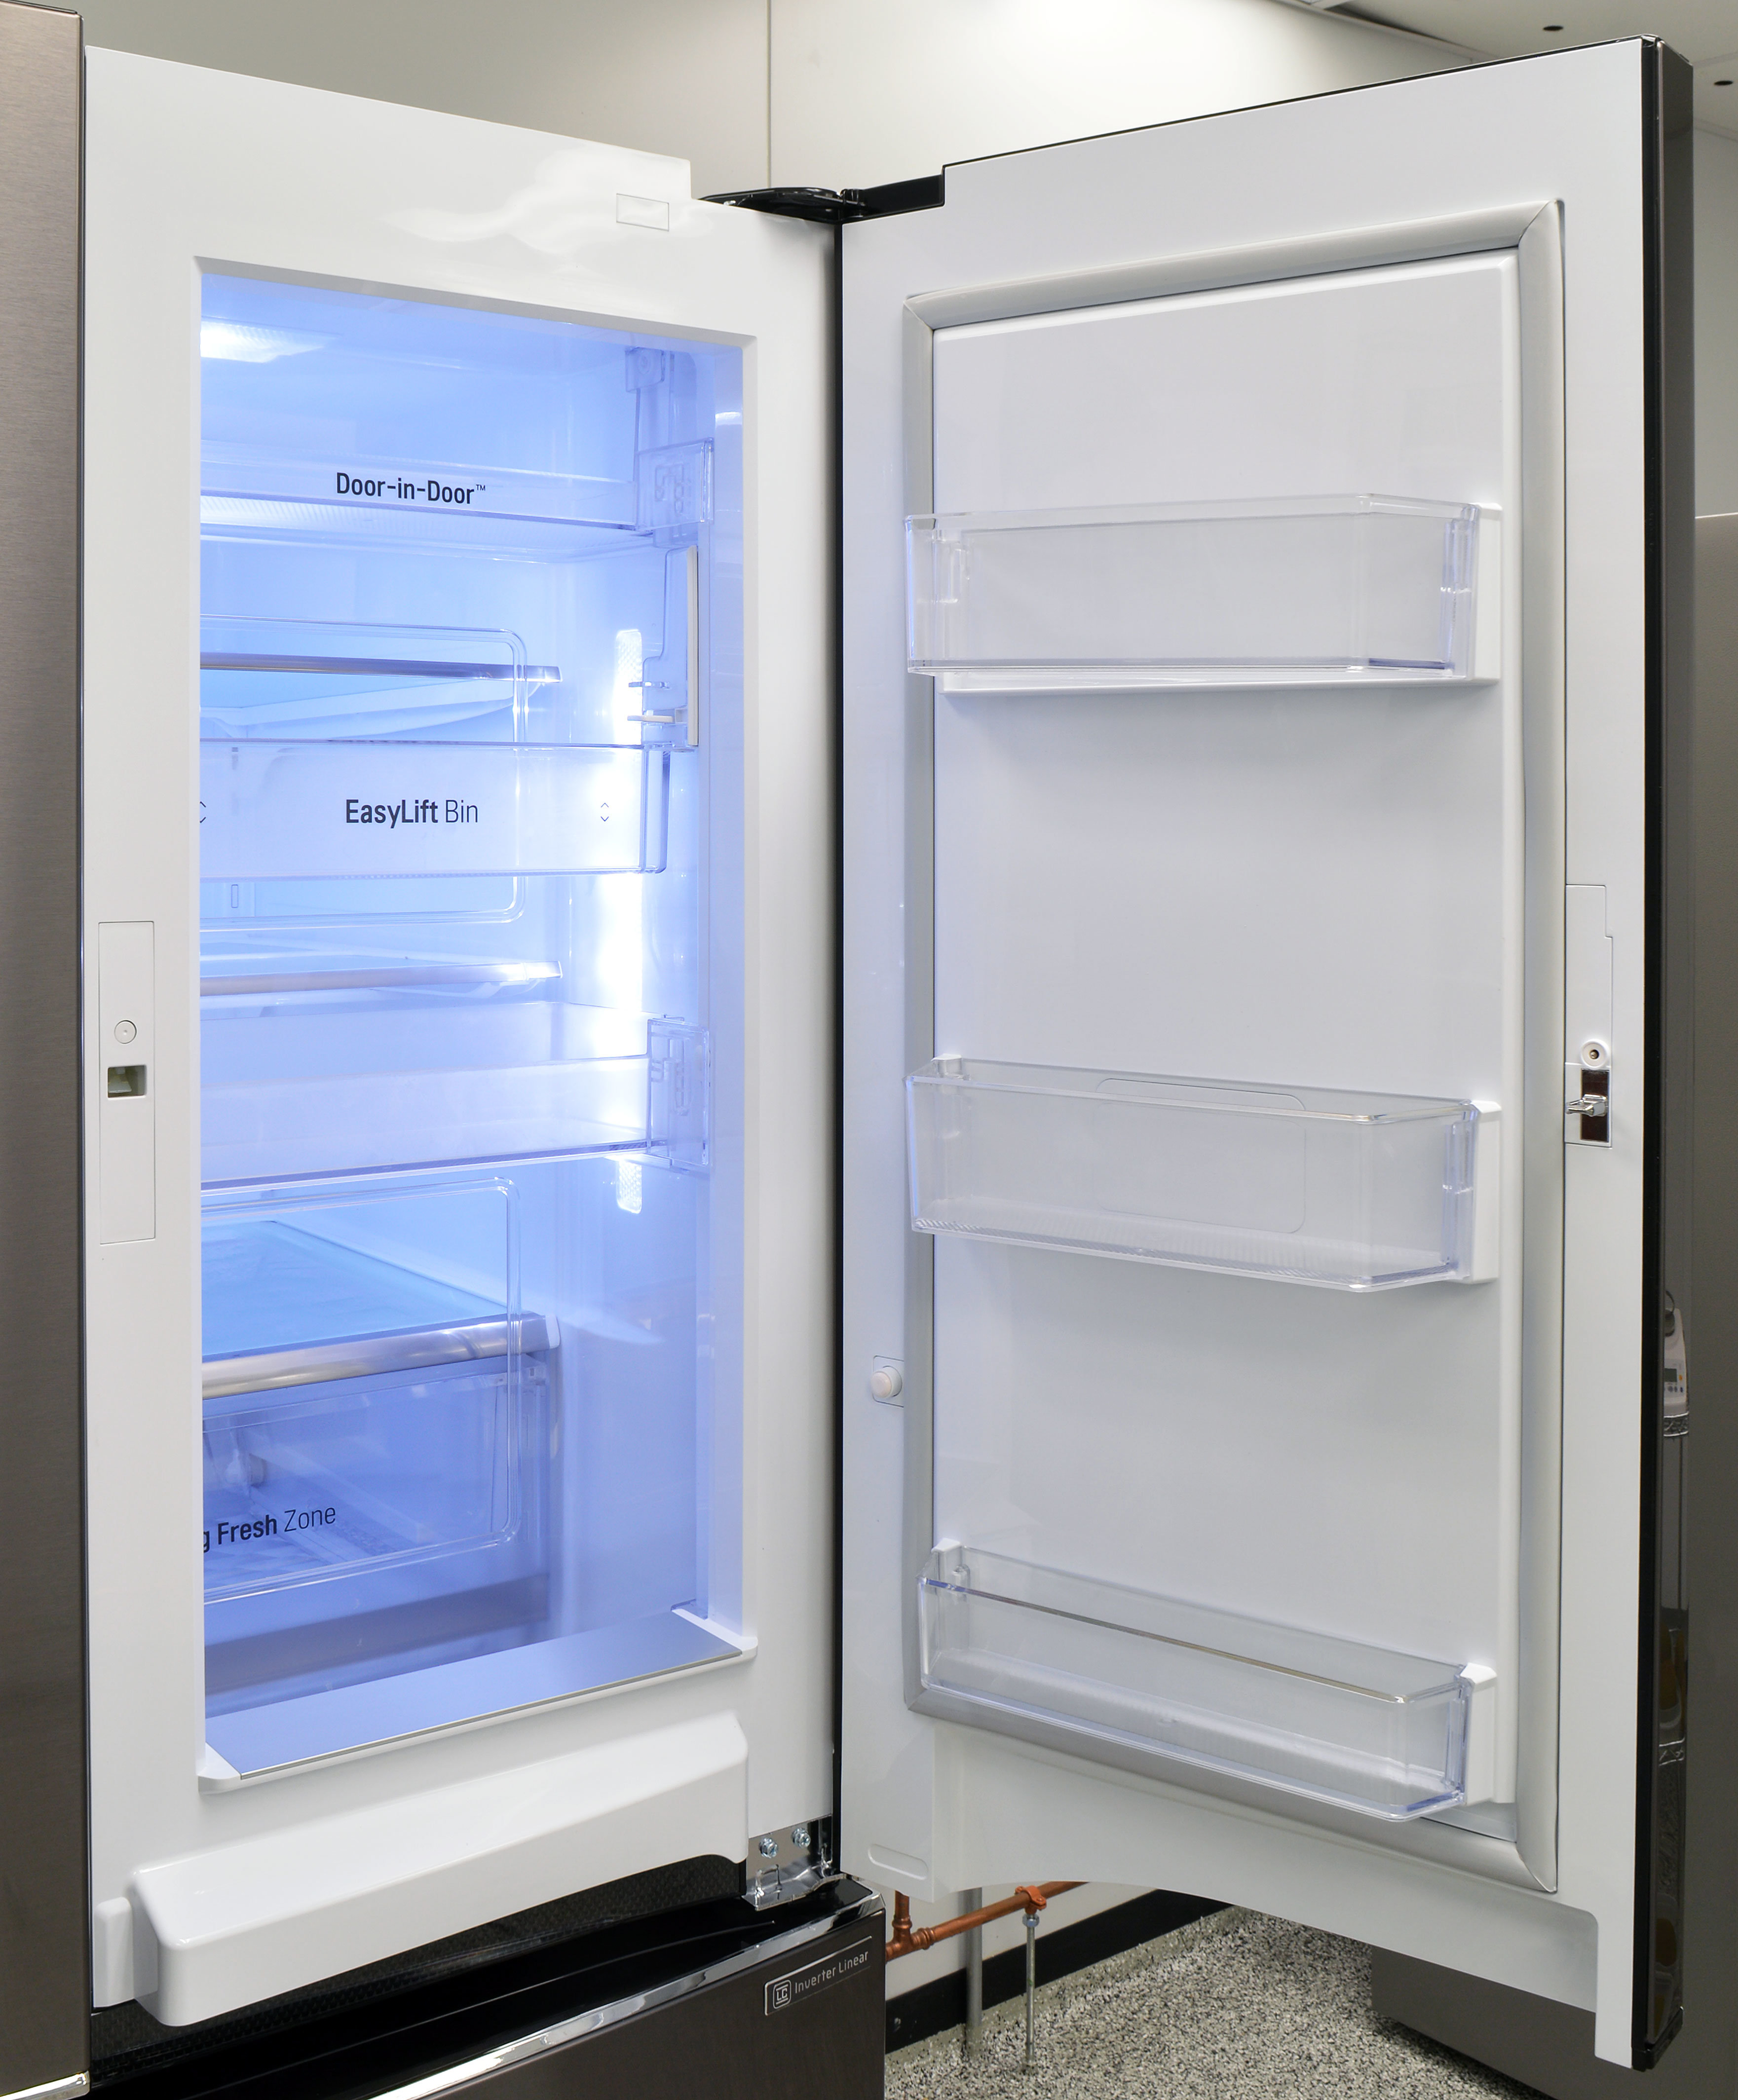 The LG LPXS30866D's door-in-door storage is designed to provide quick access to frequently-used items.